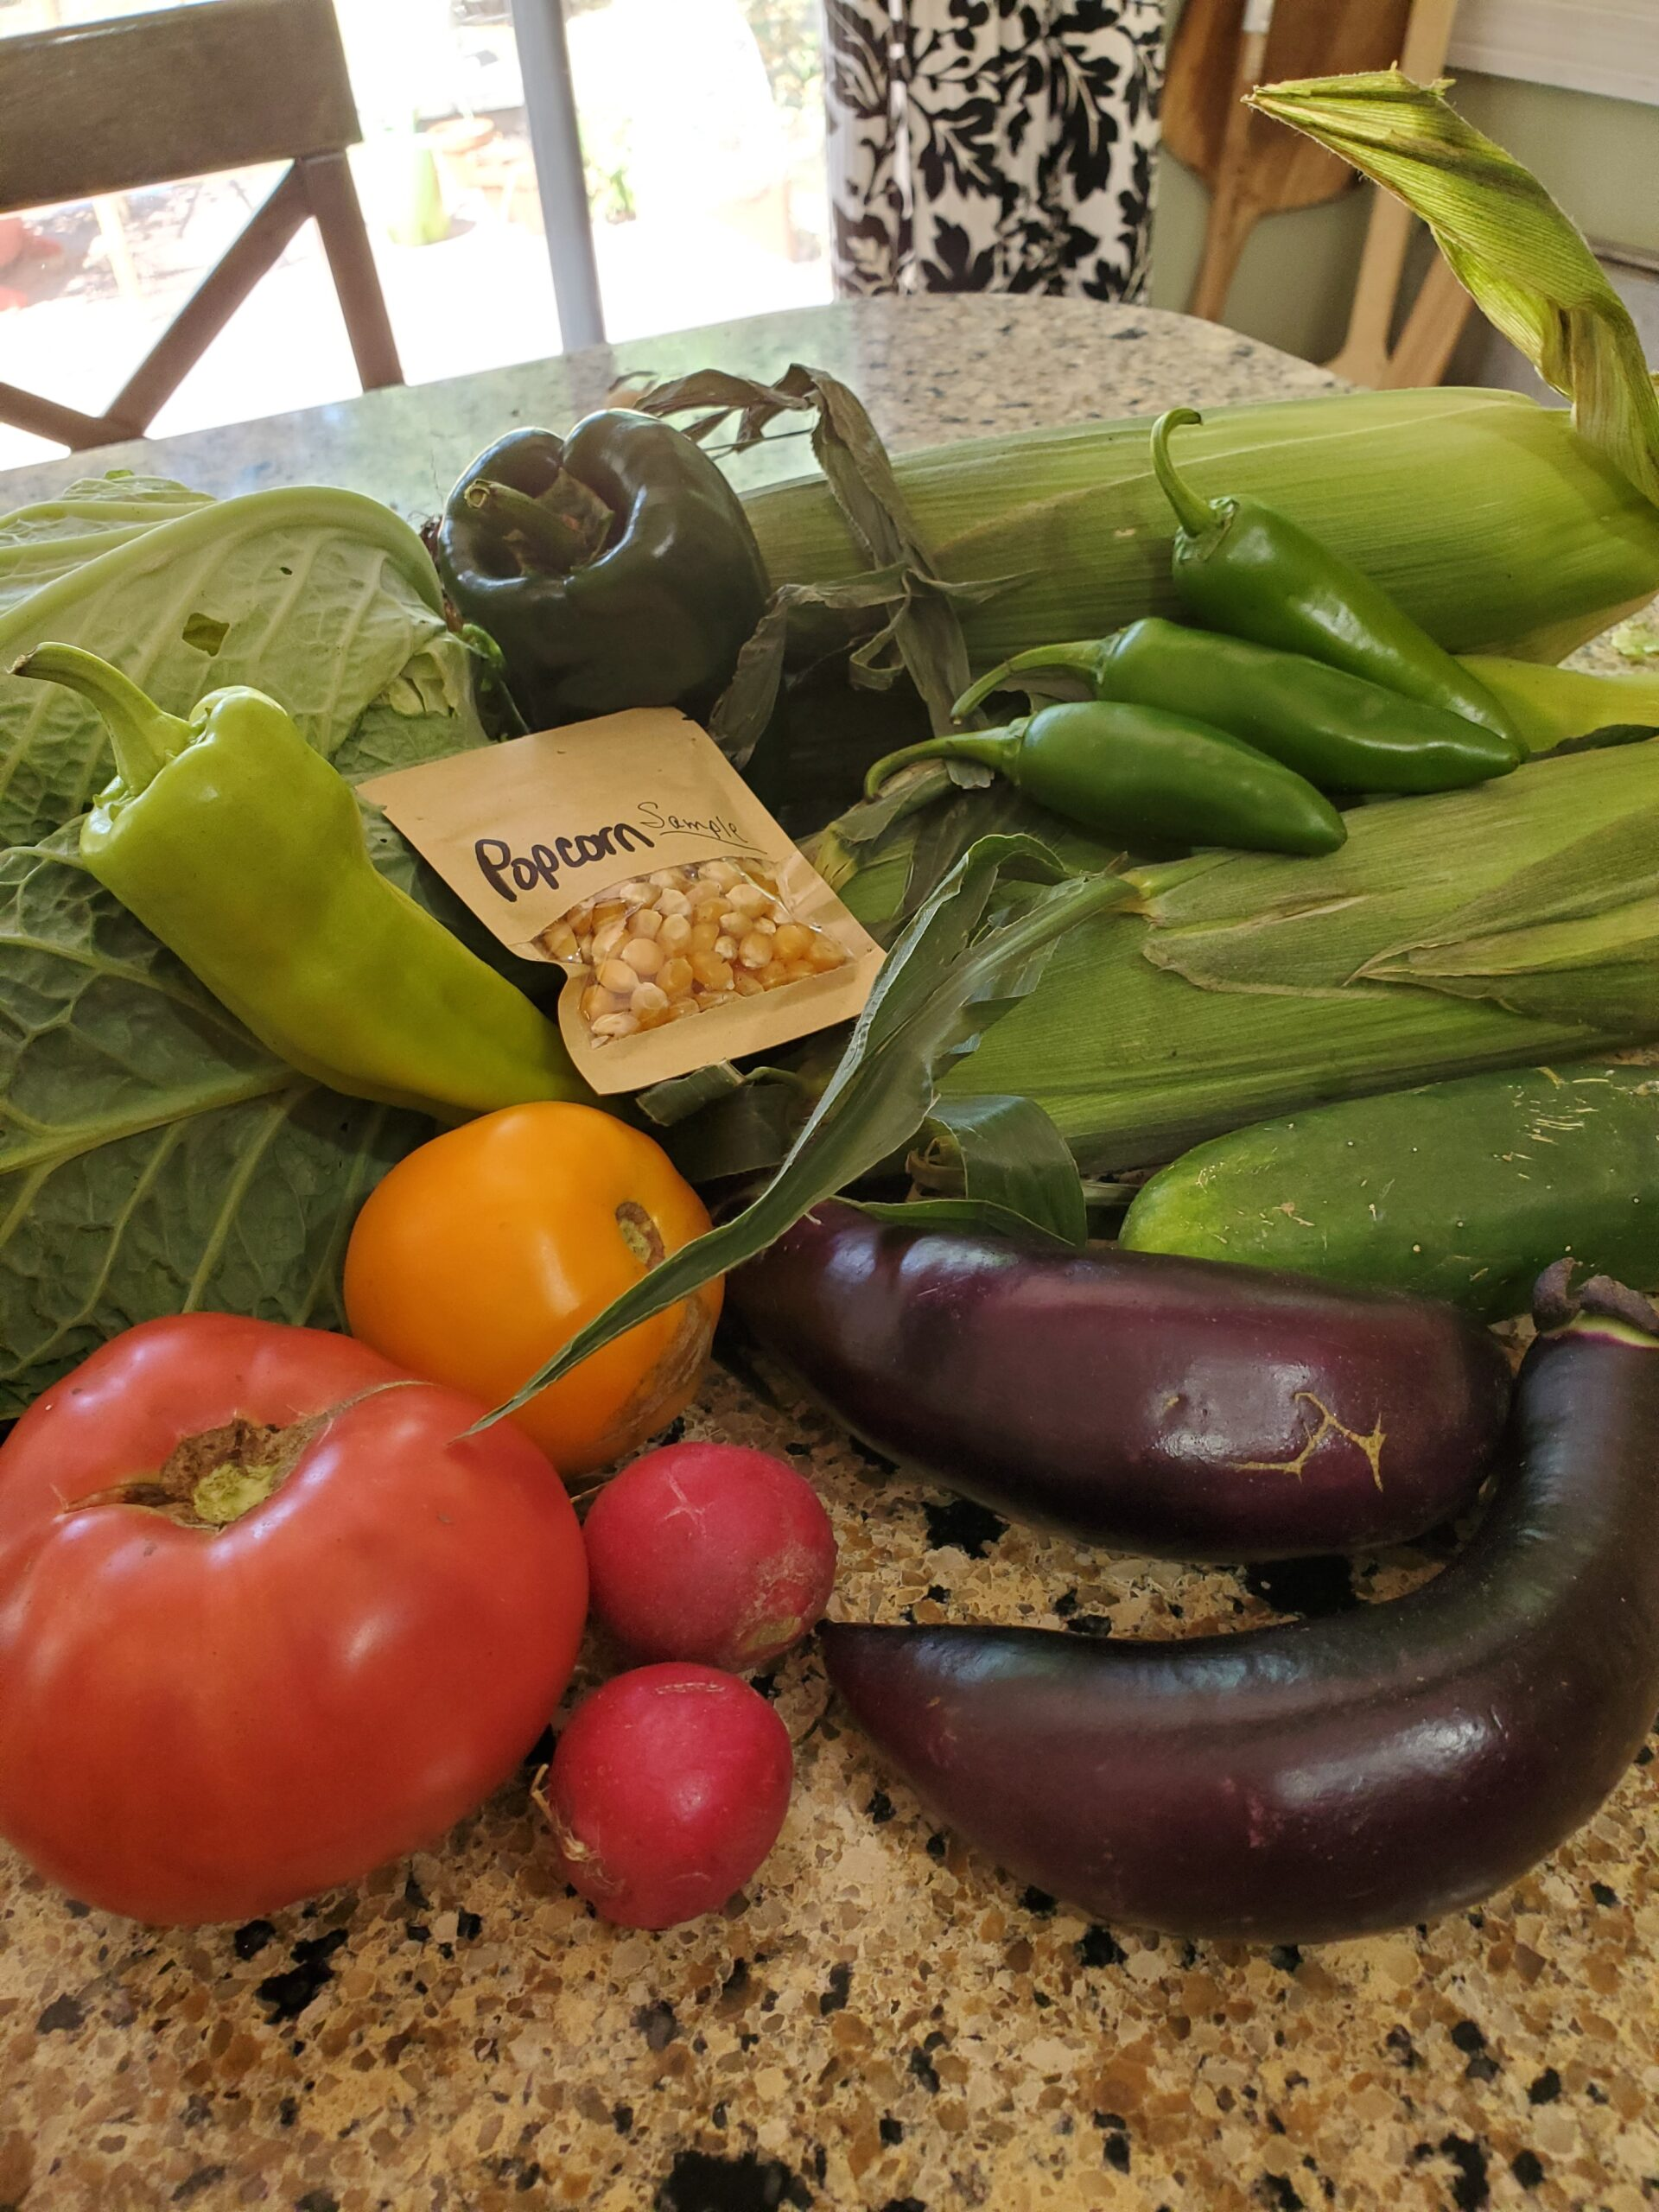 Tomatoes, eggplant, corn and other vegetables